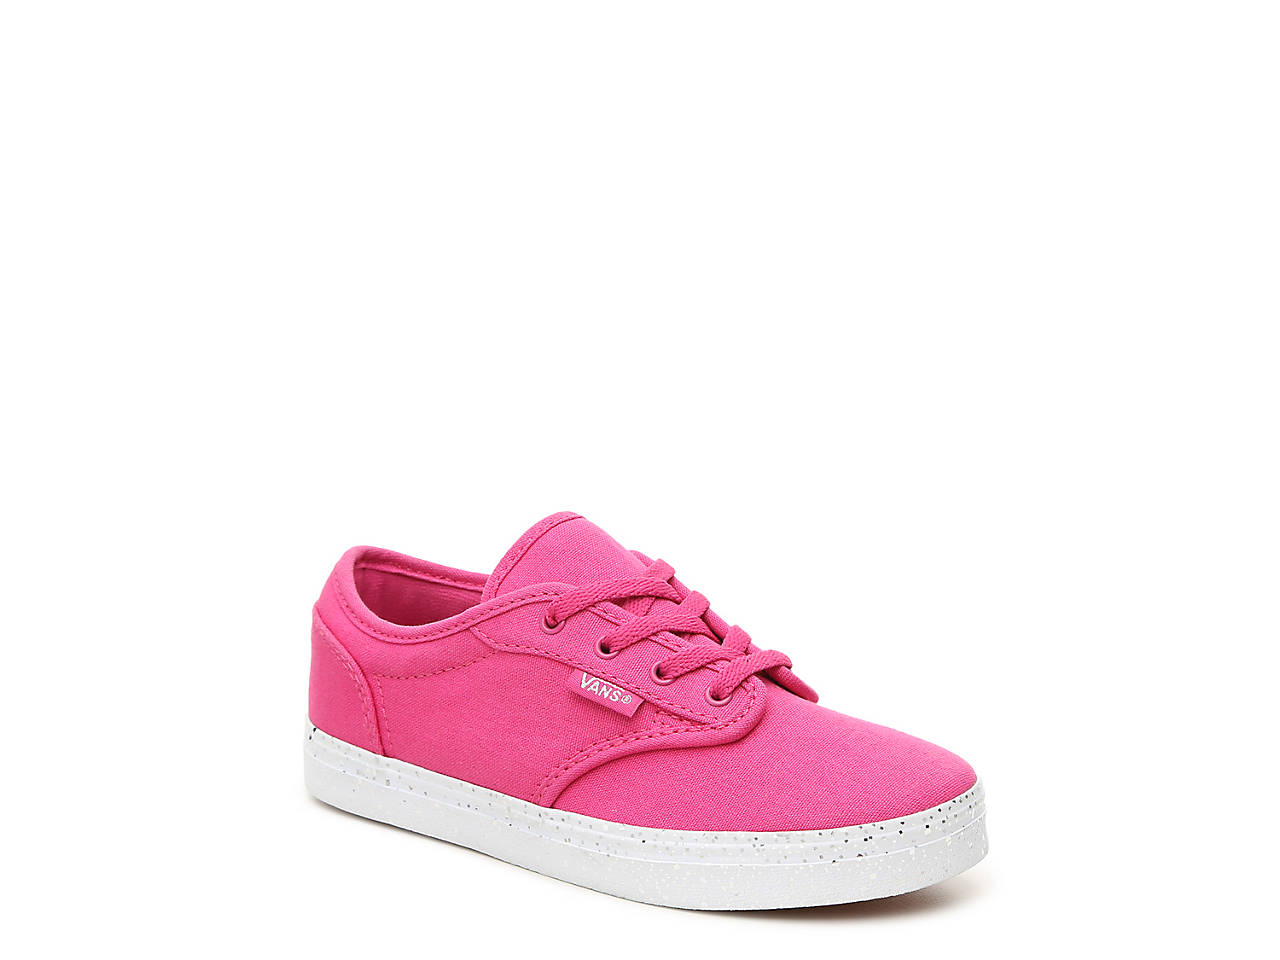 d27eee316ce Vans Atwood Toddler   Youth Sneaker Kids Shoes